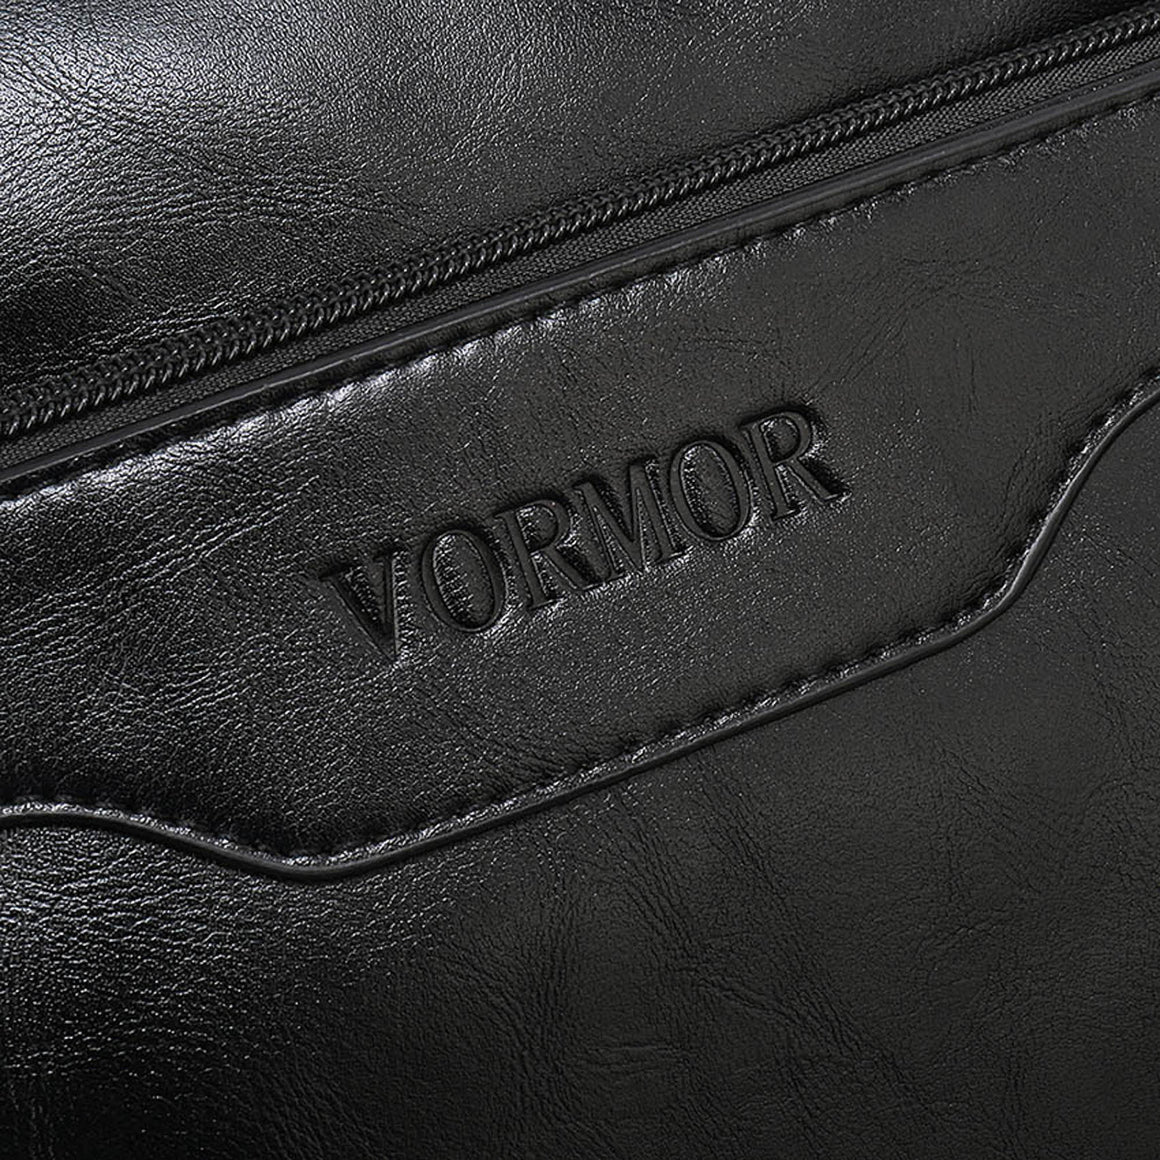 VORMOR New Leather Men's Handbag Business Men Briefcase Bag Large Capacity Shoulder Tote Bags Rivet Hollow Bottom Man Laptop Bag